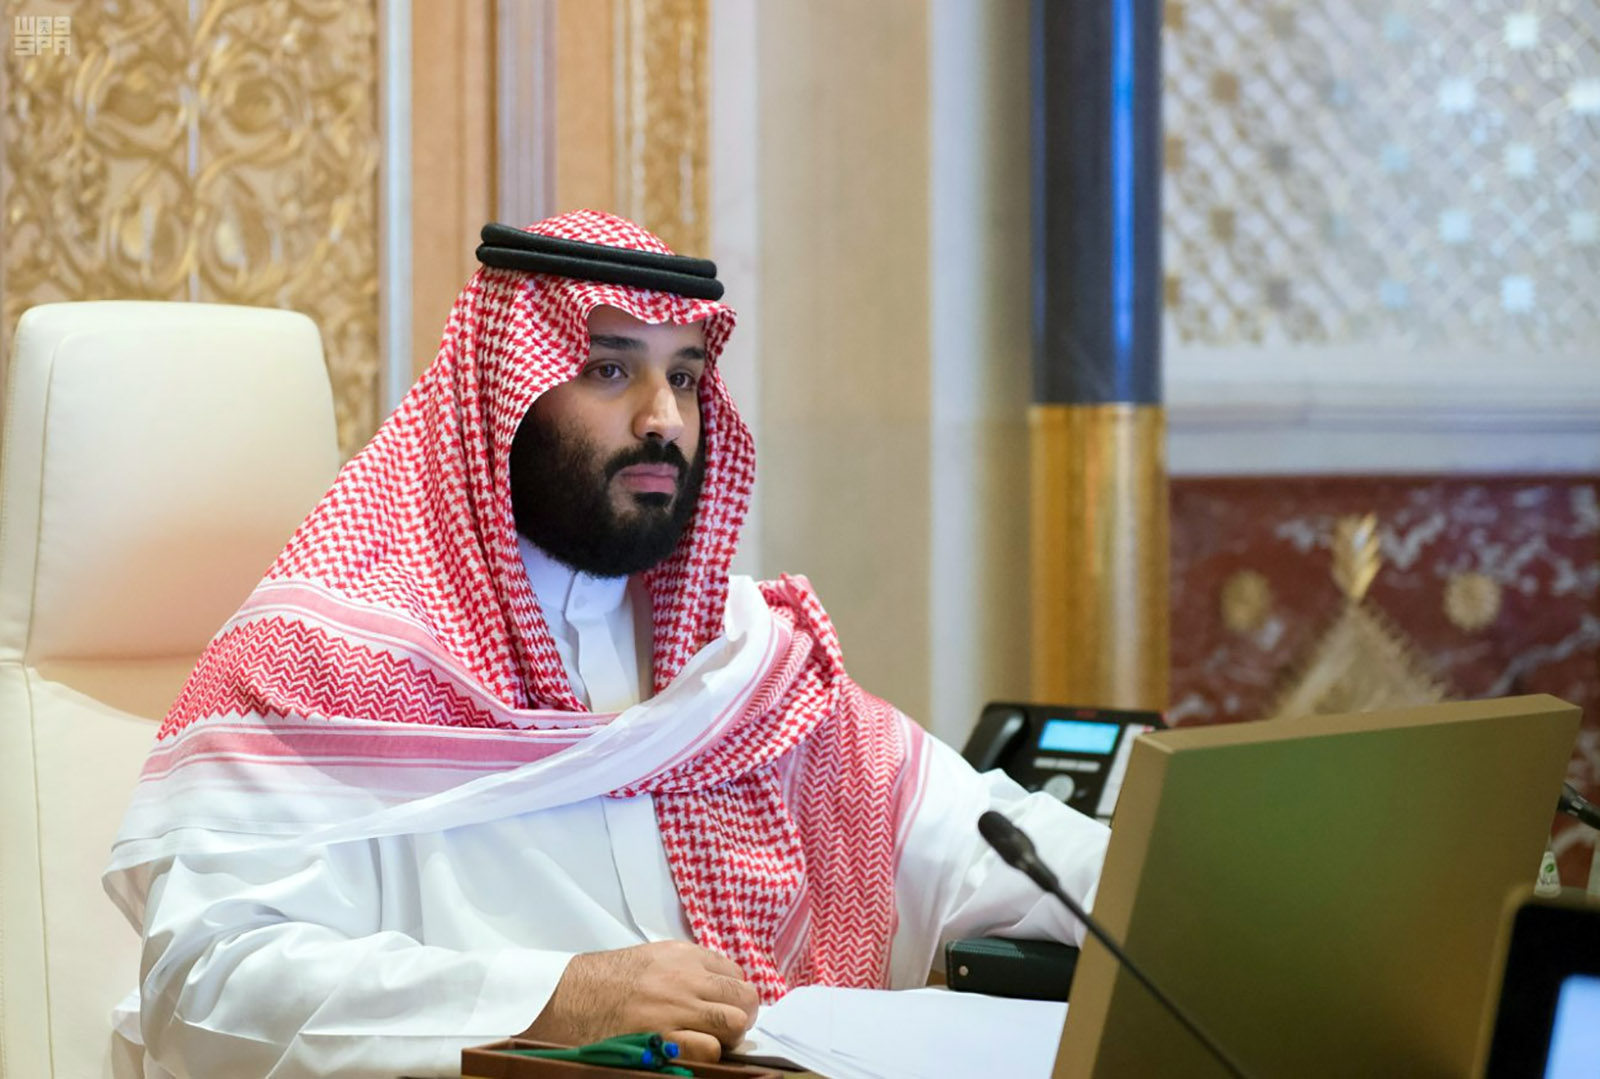 Saudi Crown Prince Mohammed bin Salman presides over a meeting of the Council of Economic and Development Affairs in Riyadh